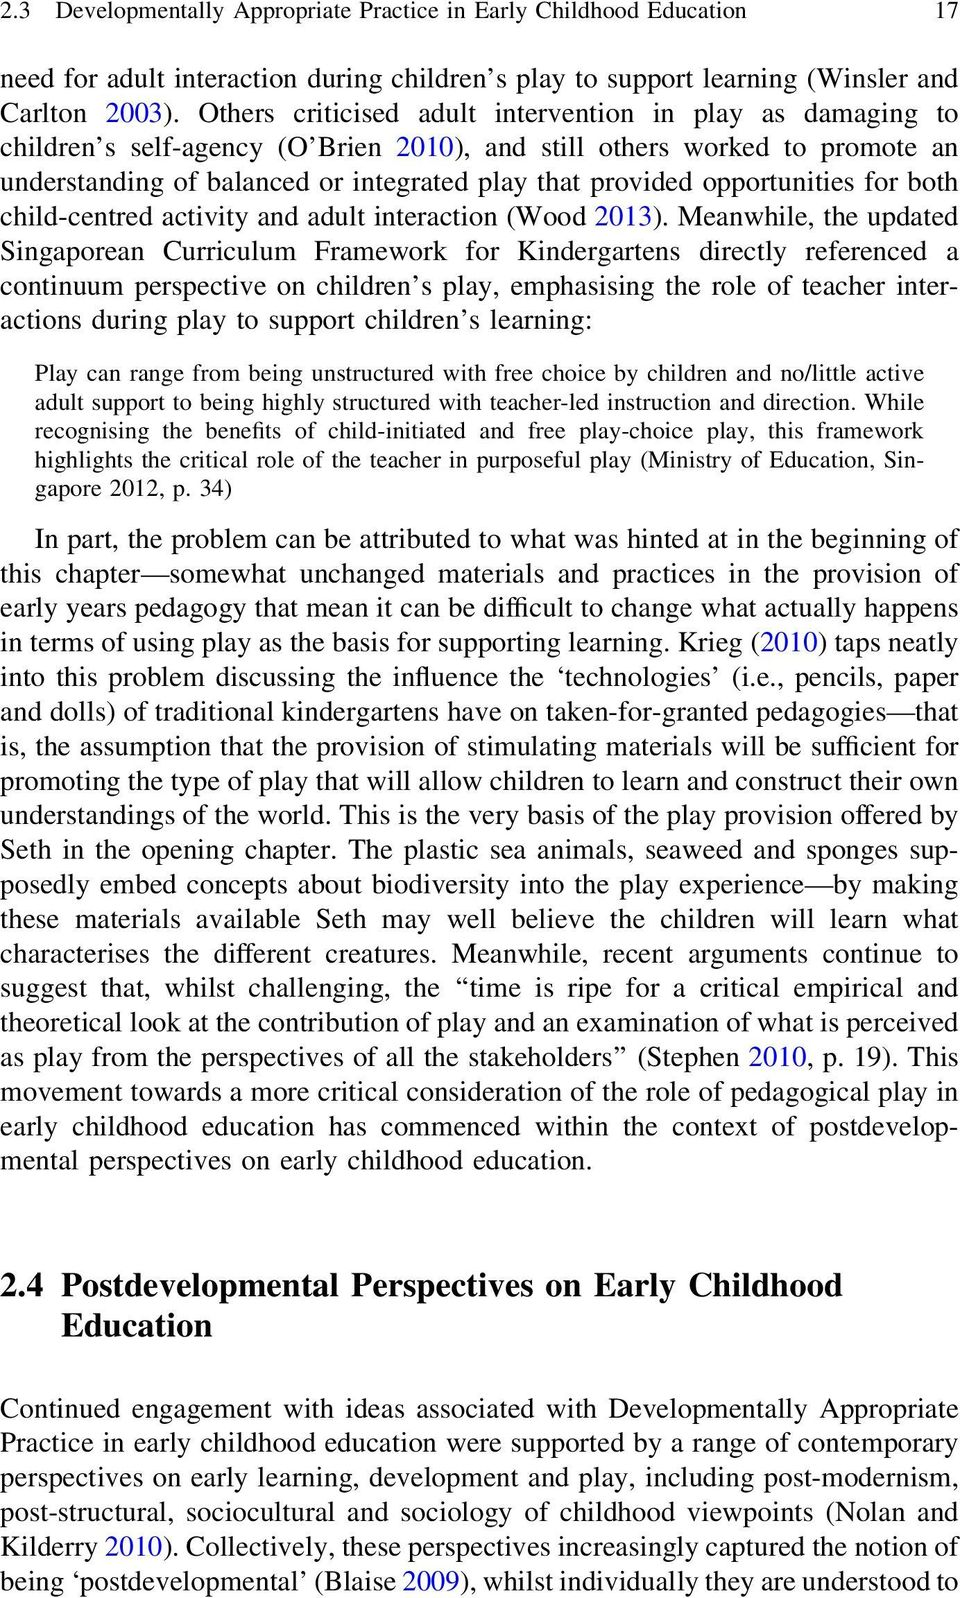 Chapter 2 Play-Based Learning in Early Childhood Education - PDF